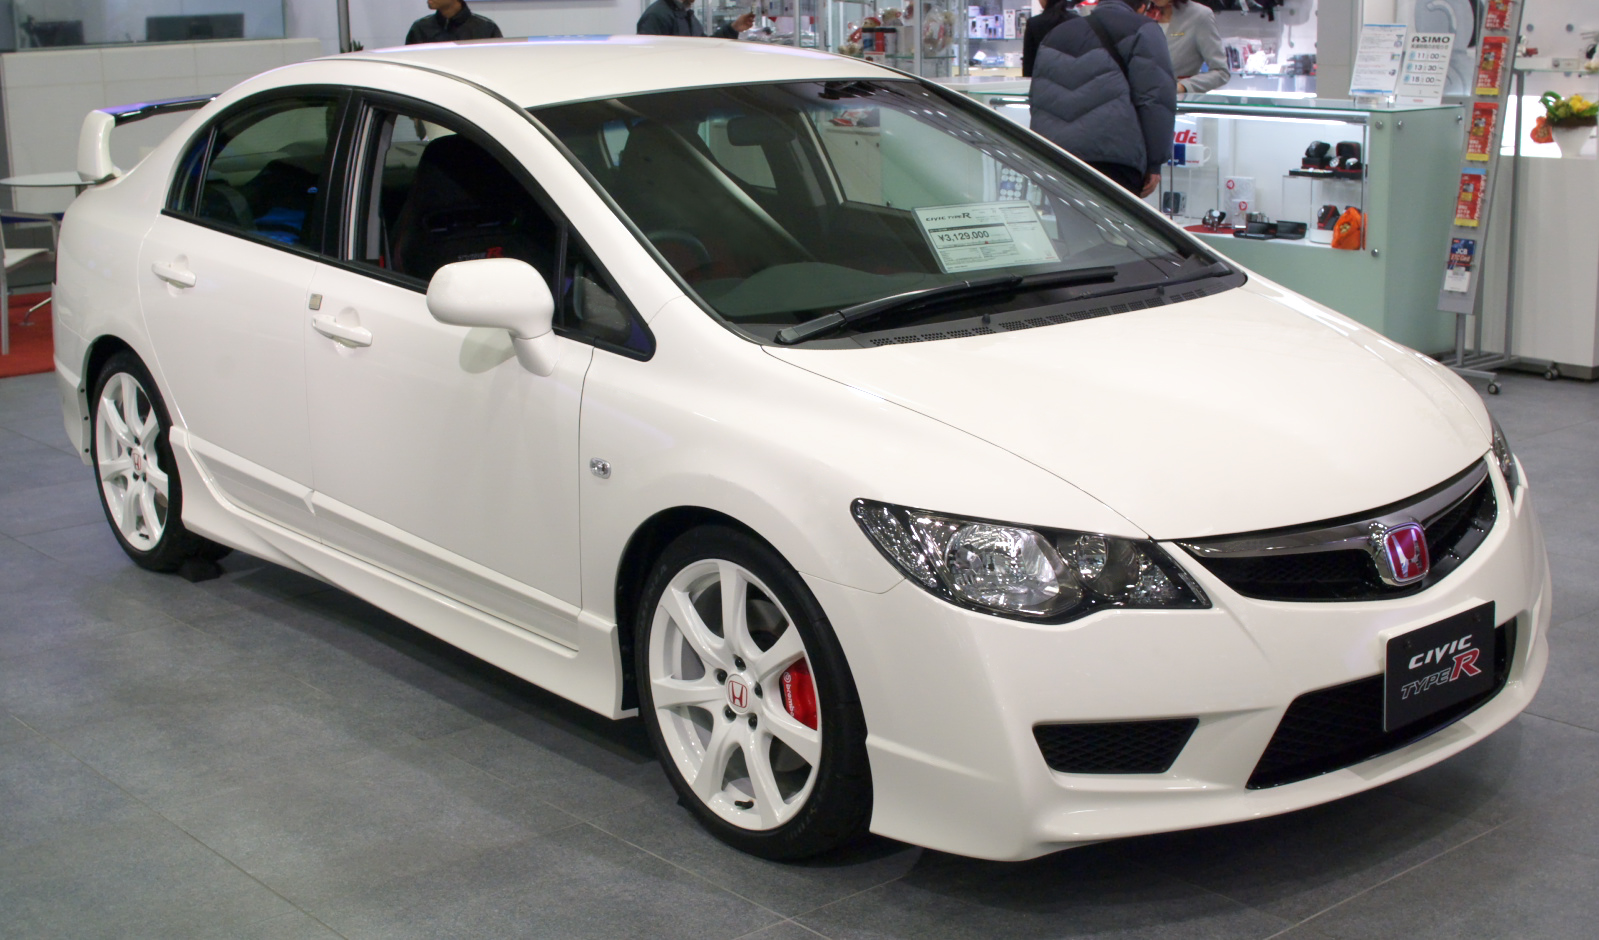 File:2007 Honda Civic TypeR 01.JPG